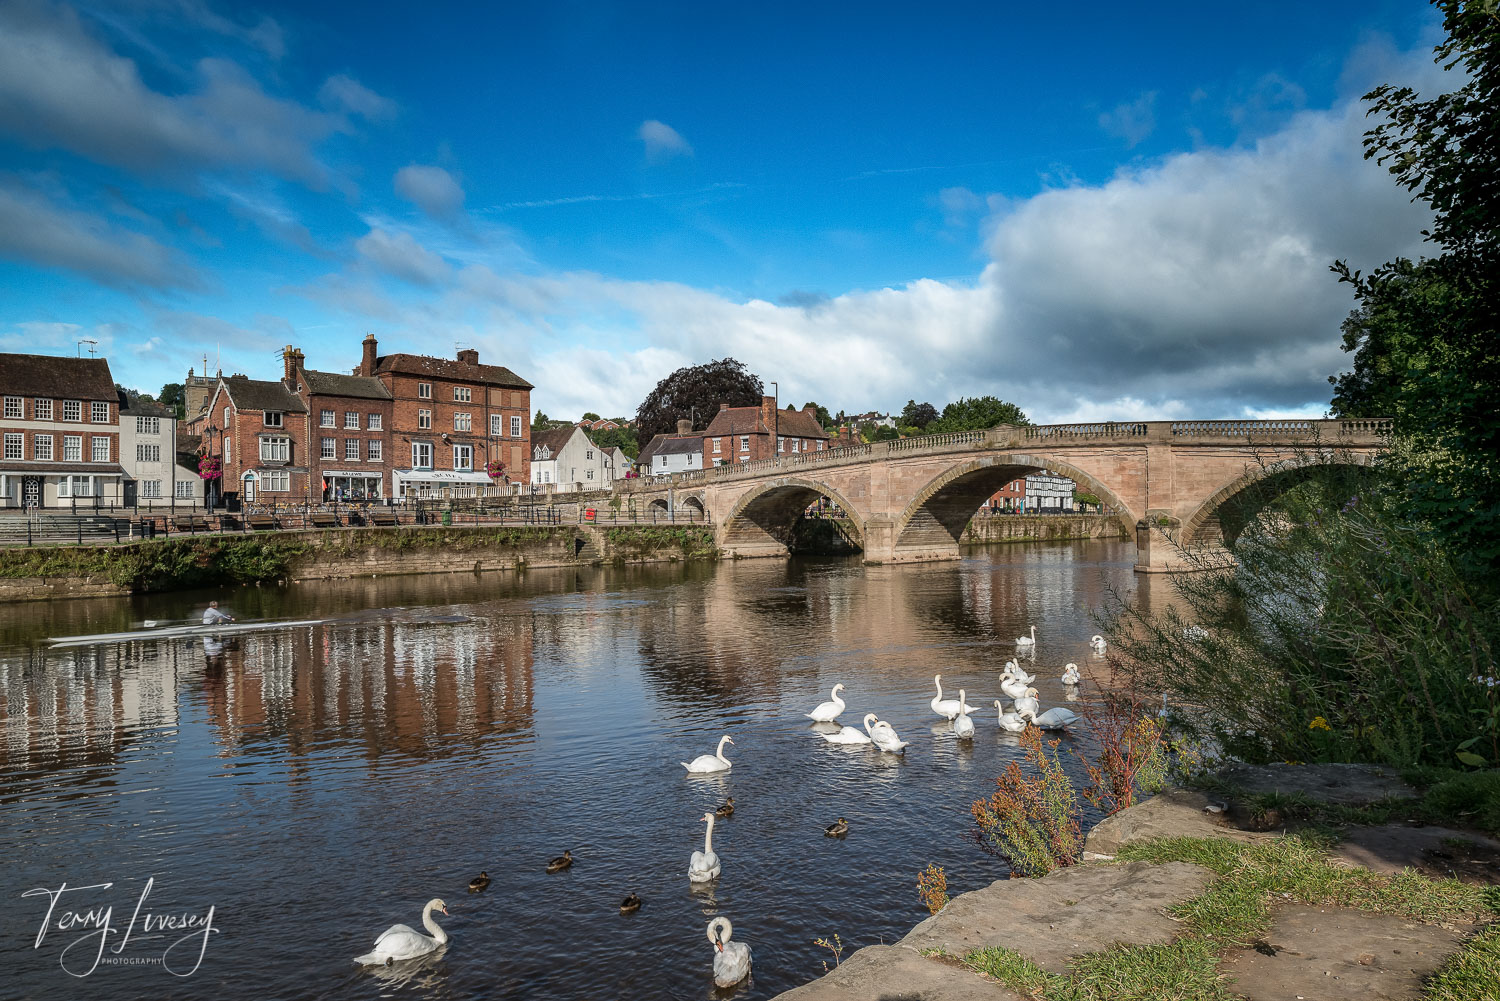 Bewdley is a well know market town with the River Severn flowing majestically though it. Set in the Wyre Forest, with plenty of local attractions to entertain everyone, It's an idylic location.